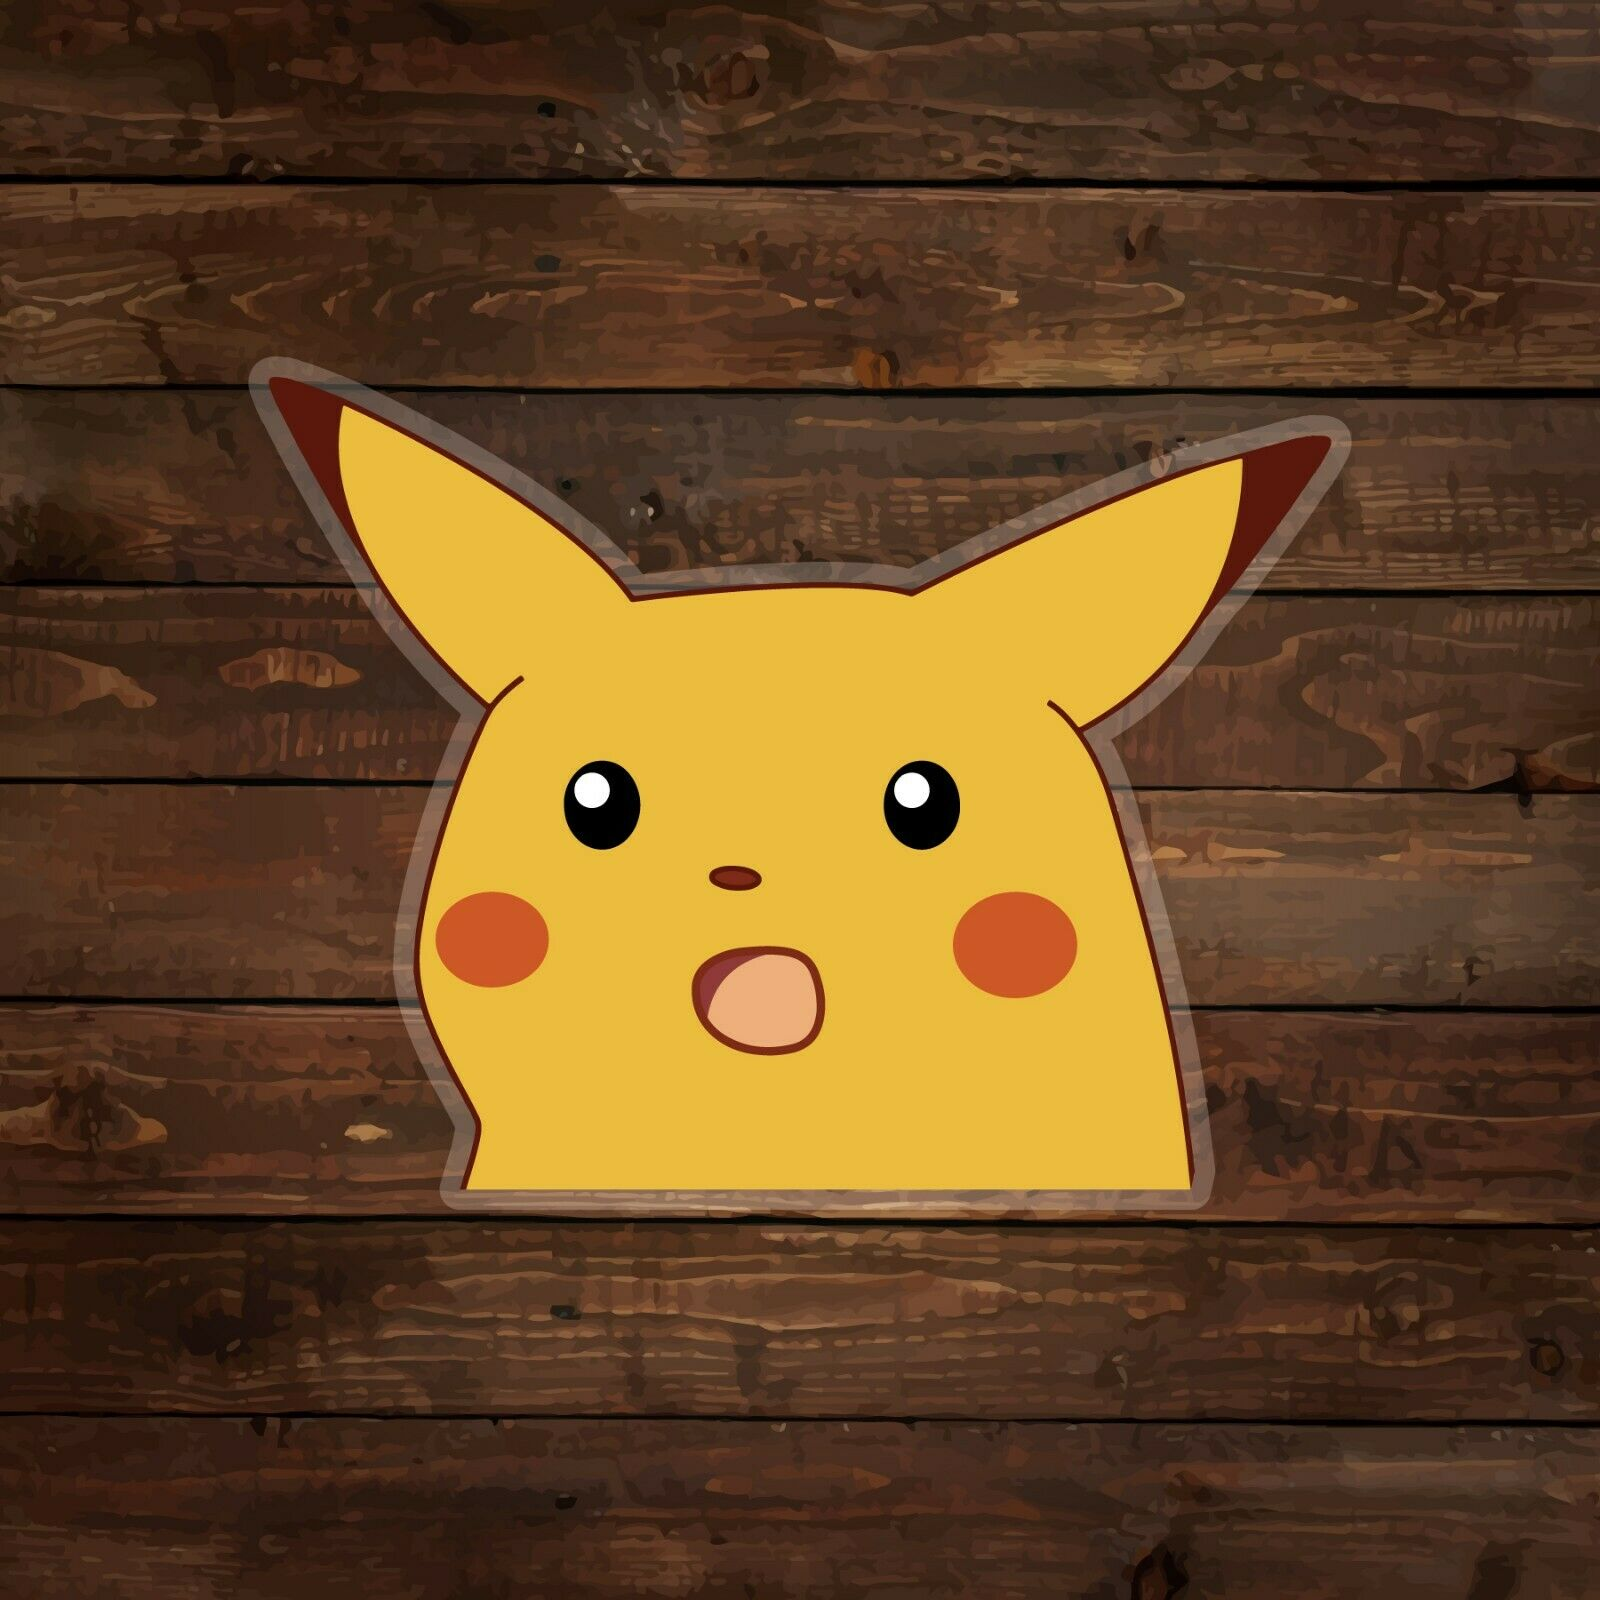 Home Decoration - Surprised Pikachu Meme [on clear] (Pokemon) Decal/Sticker